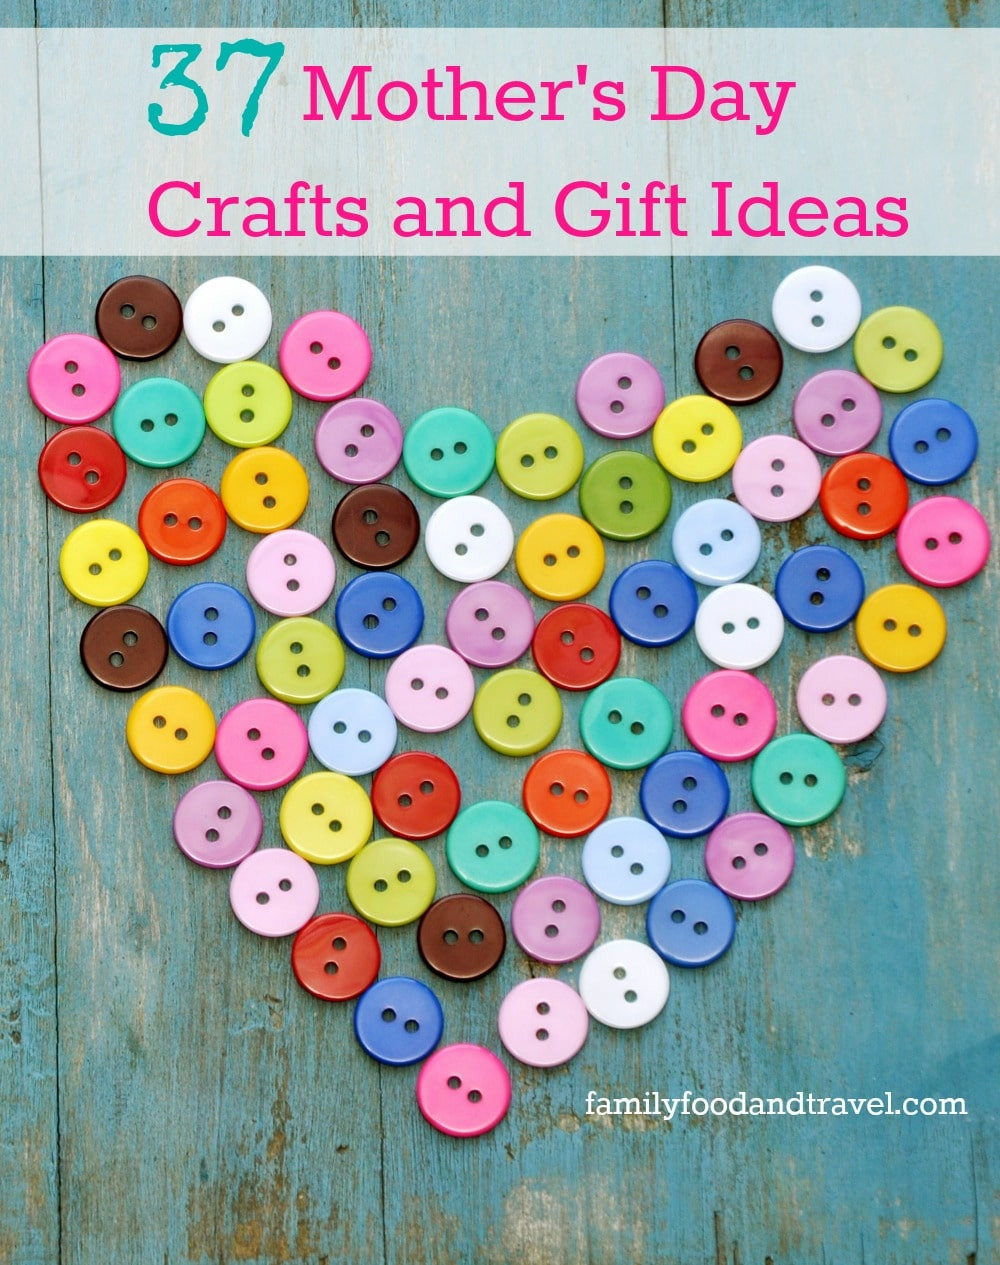 Arts And Crafts Mothers Day Gift Ideas  37 Mothers Day Crafts and Gift Ideas Family Food And Travel